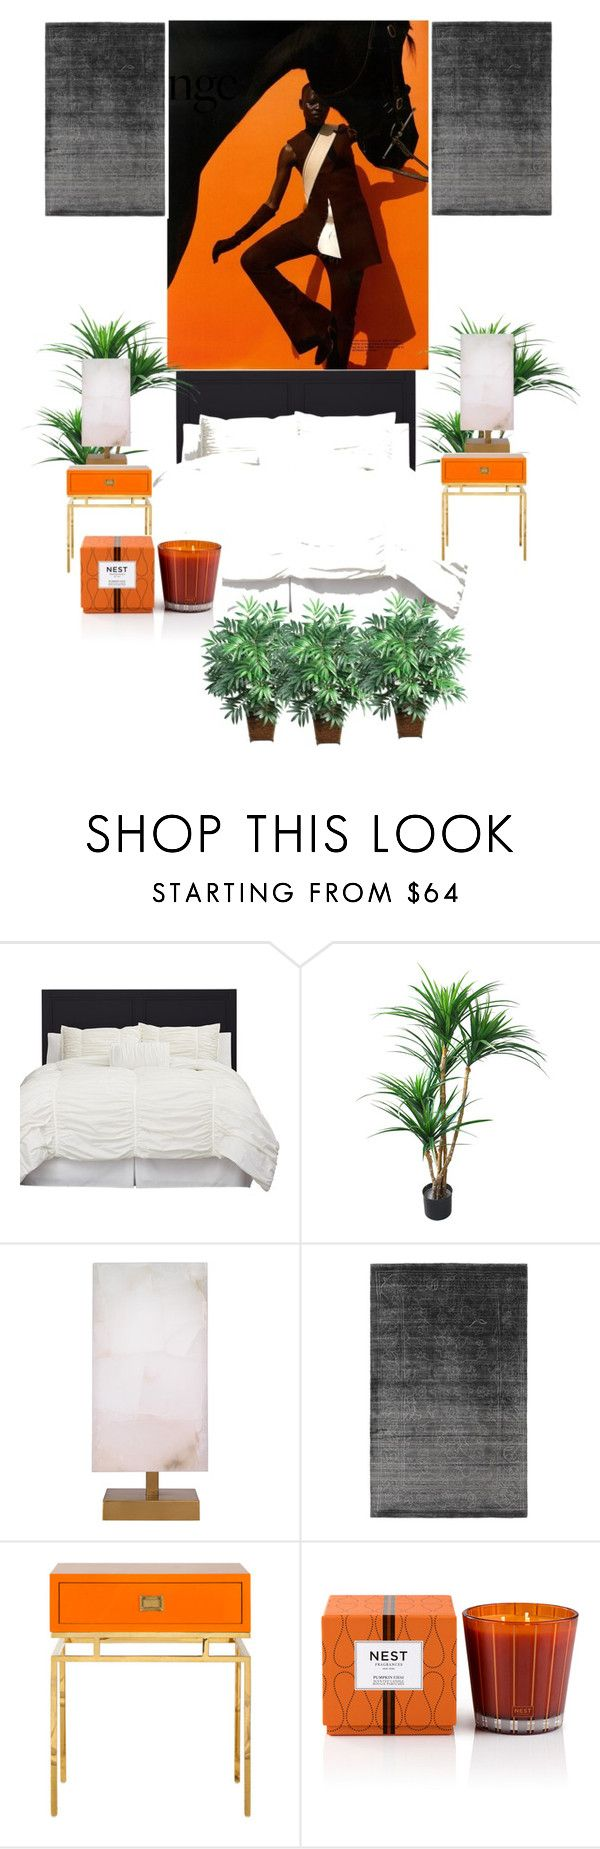 """Sans titre #2"" by morgane-von-platen ❤ liked on Polyvore featuring interior, interiors, interior design, home, home decor, interior decorating, Jamie Young, Nest Fragrances, Nearly Natural and orangeandblack"